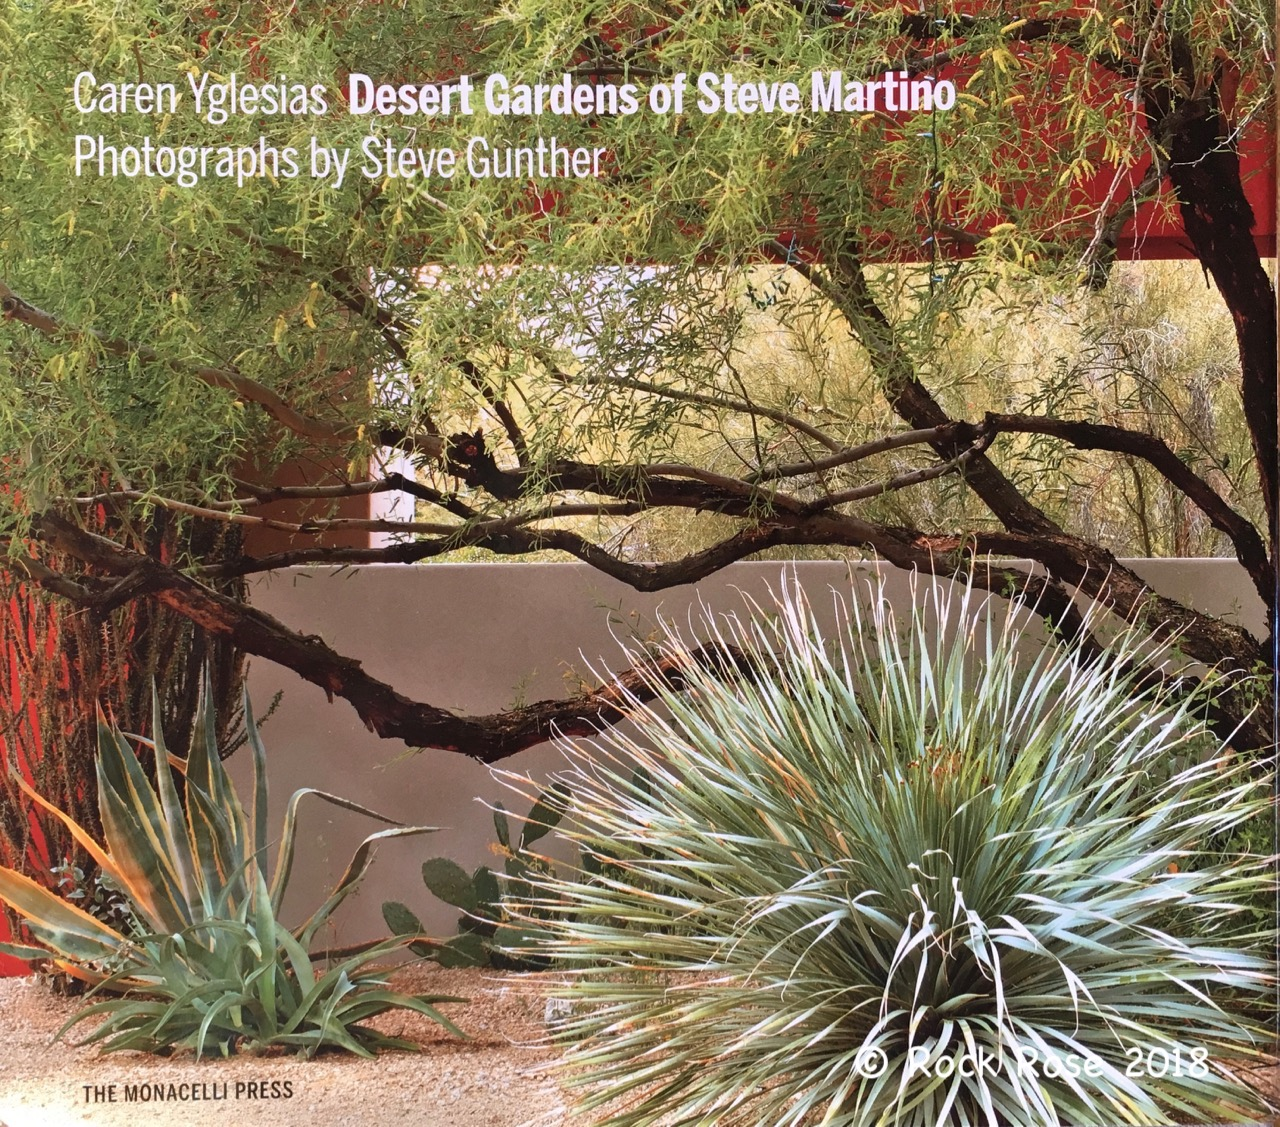 ROCK ROSE: DESERT GARDENS OF STEVE MARTINO